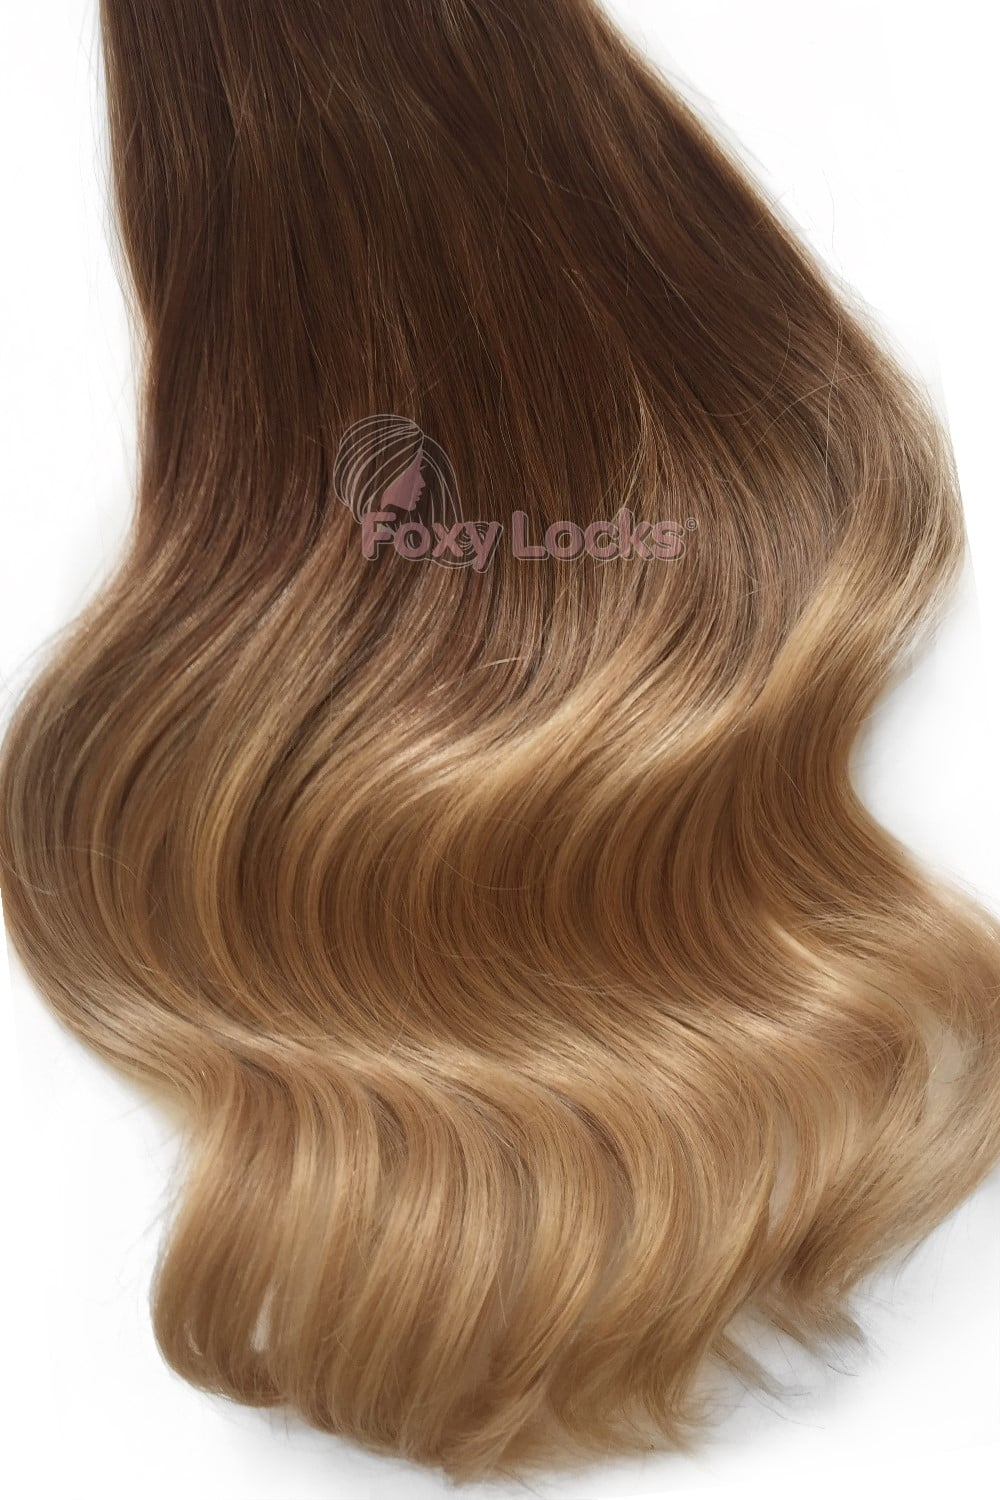 Deluxe 20inch 165g Seamless Clip In Extensions Honey Spice